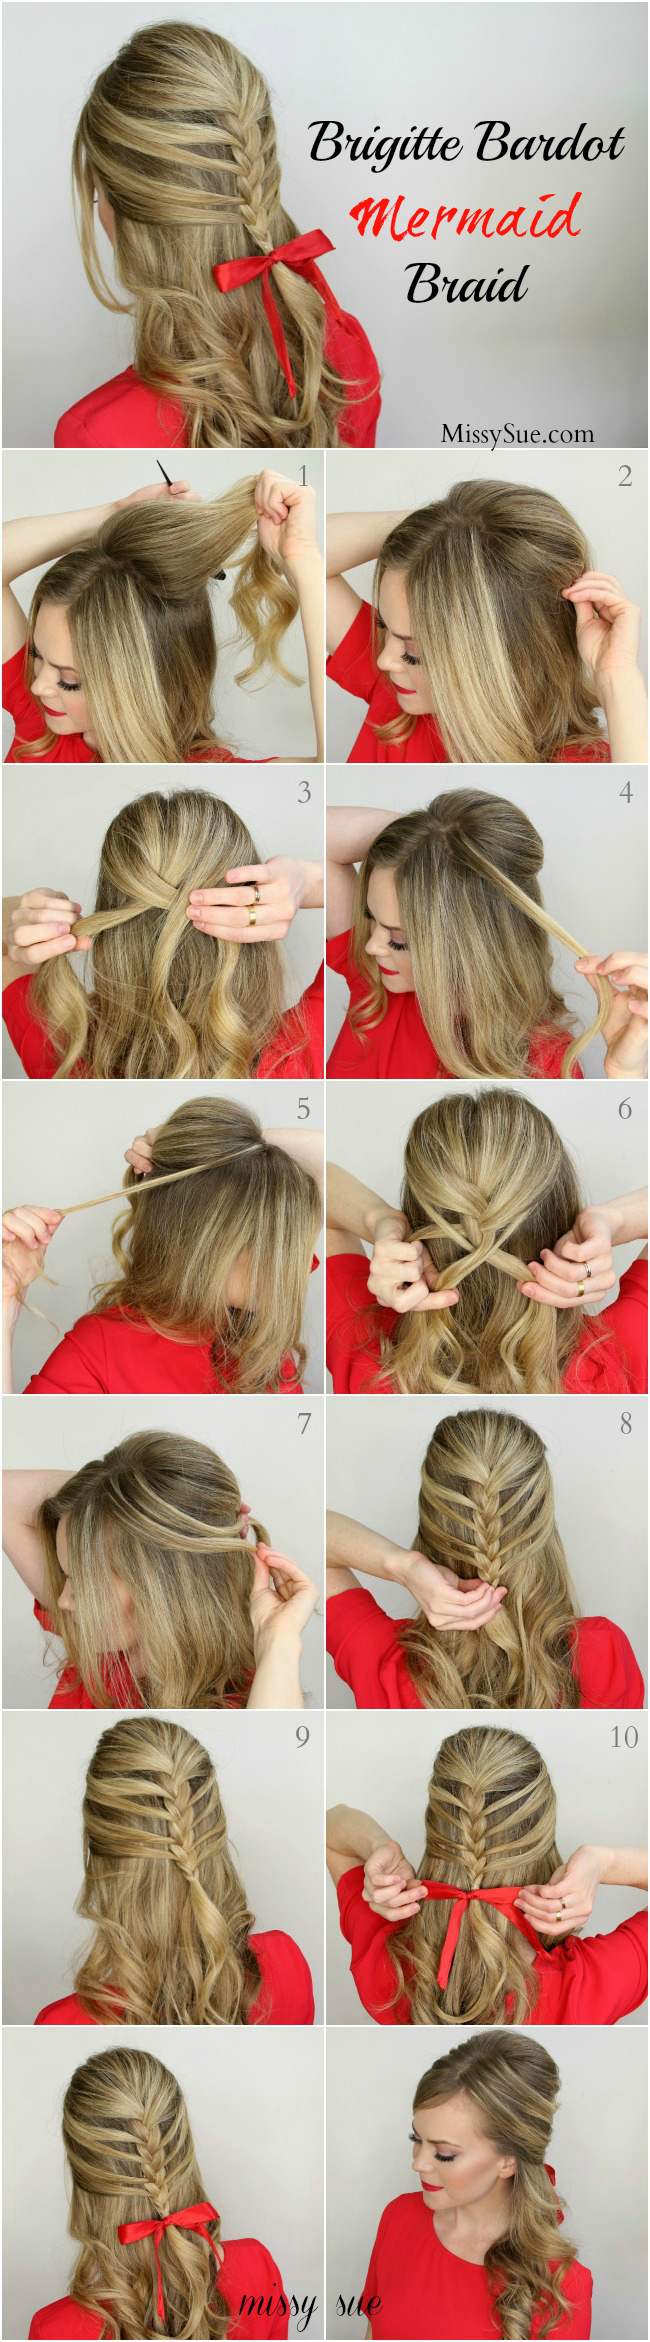 Hairstyle Tutorials Brilliant 15 Stepstep Braided Hair Tutorials  Hairstyles  Pinterest